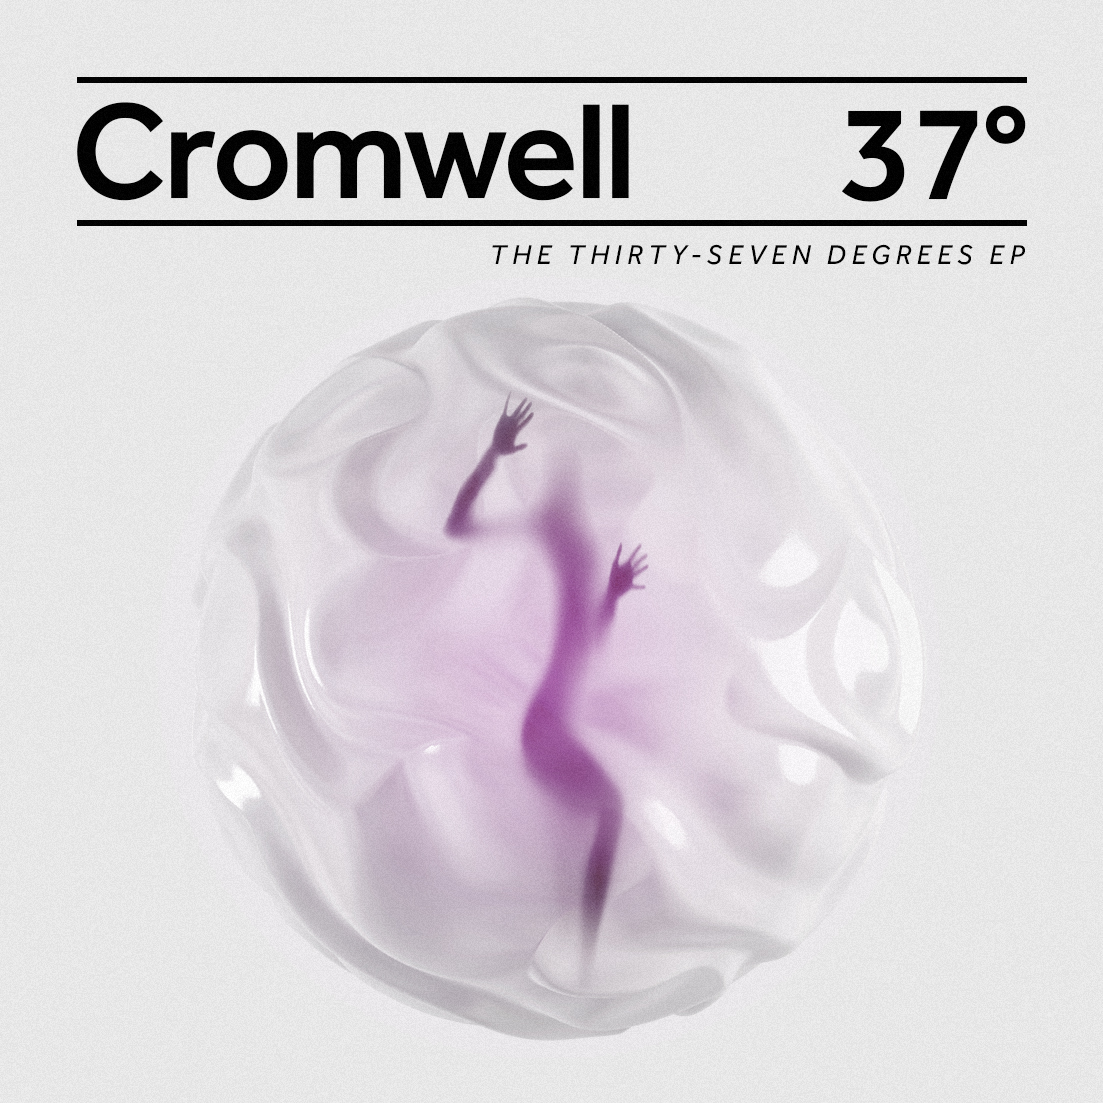 Cromwell - The 37 degrees EP